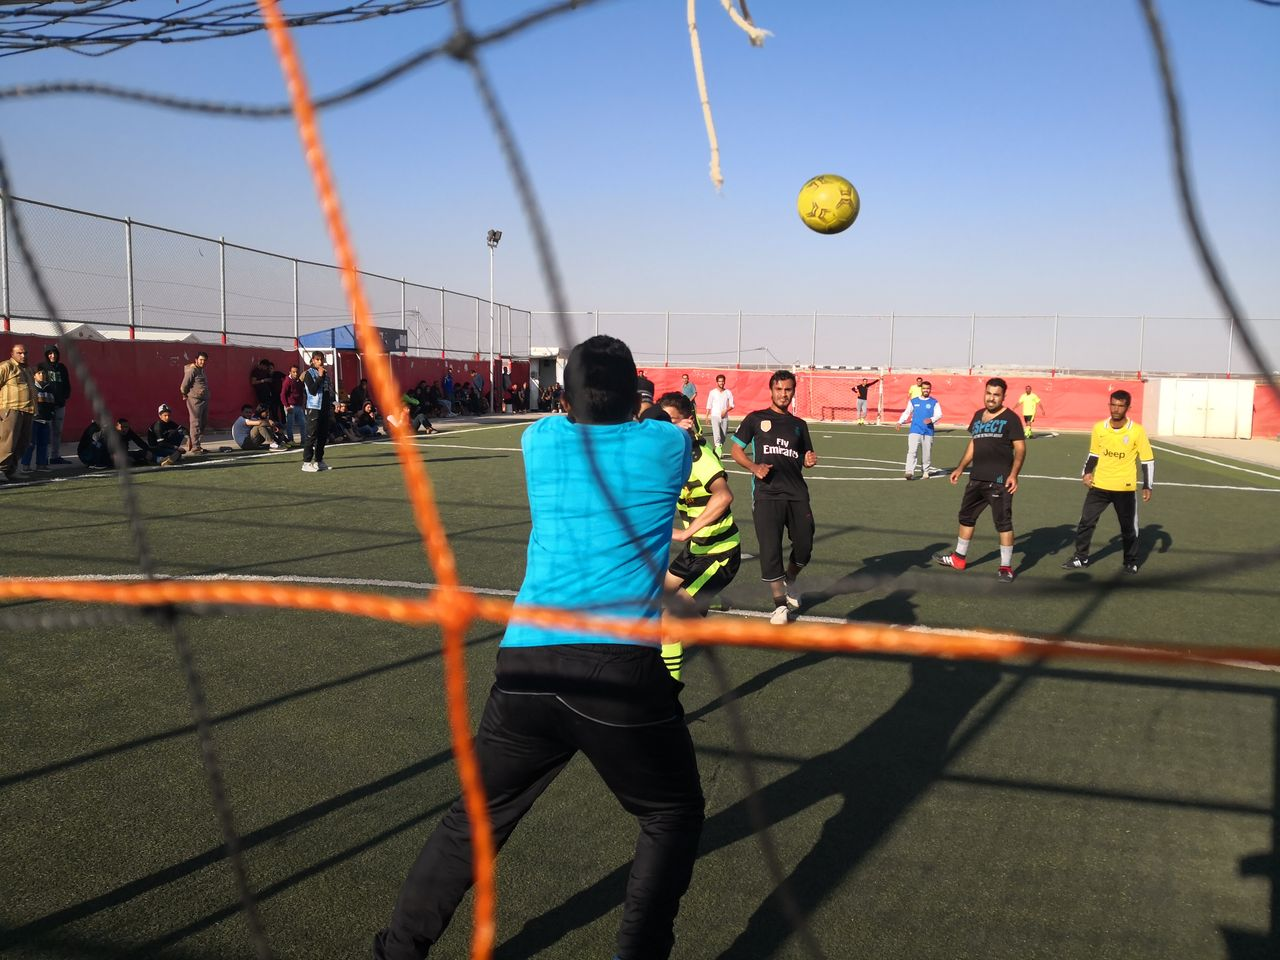 Footballtournament in the Camp. The team of World Vision is playing against a team of CARE.